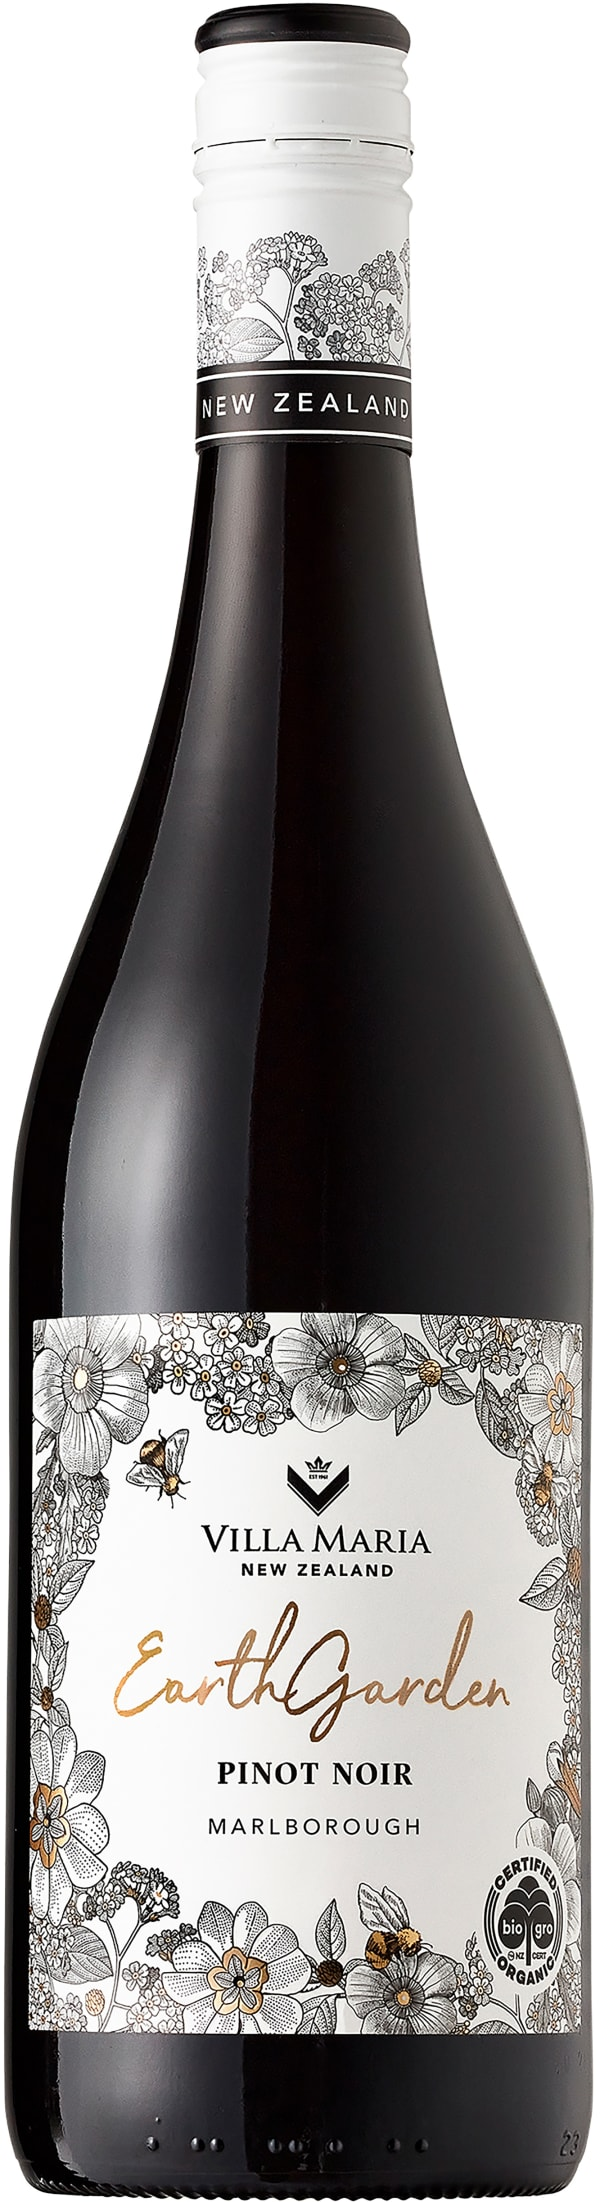 Villa Maria Cellar Selection Pinot Noir 2016